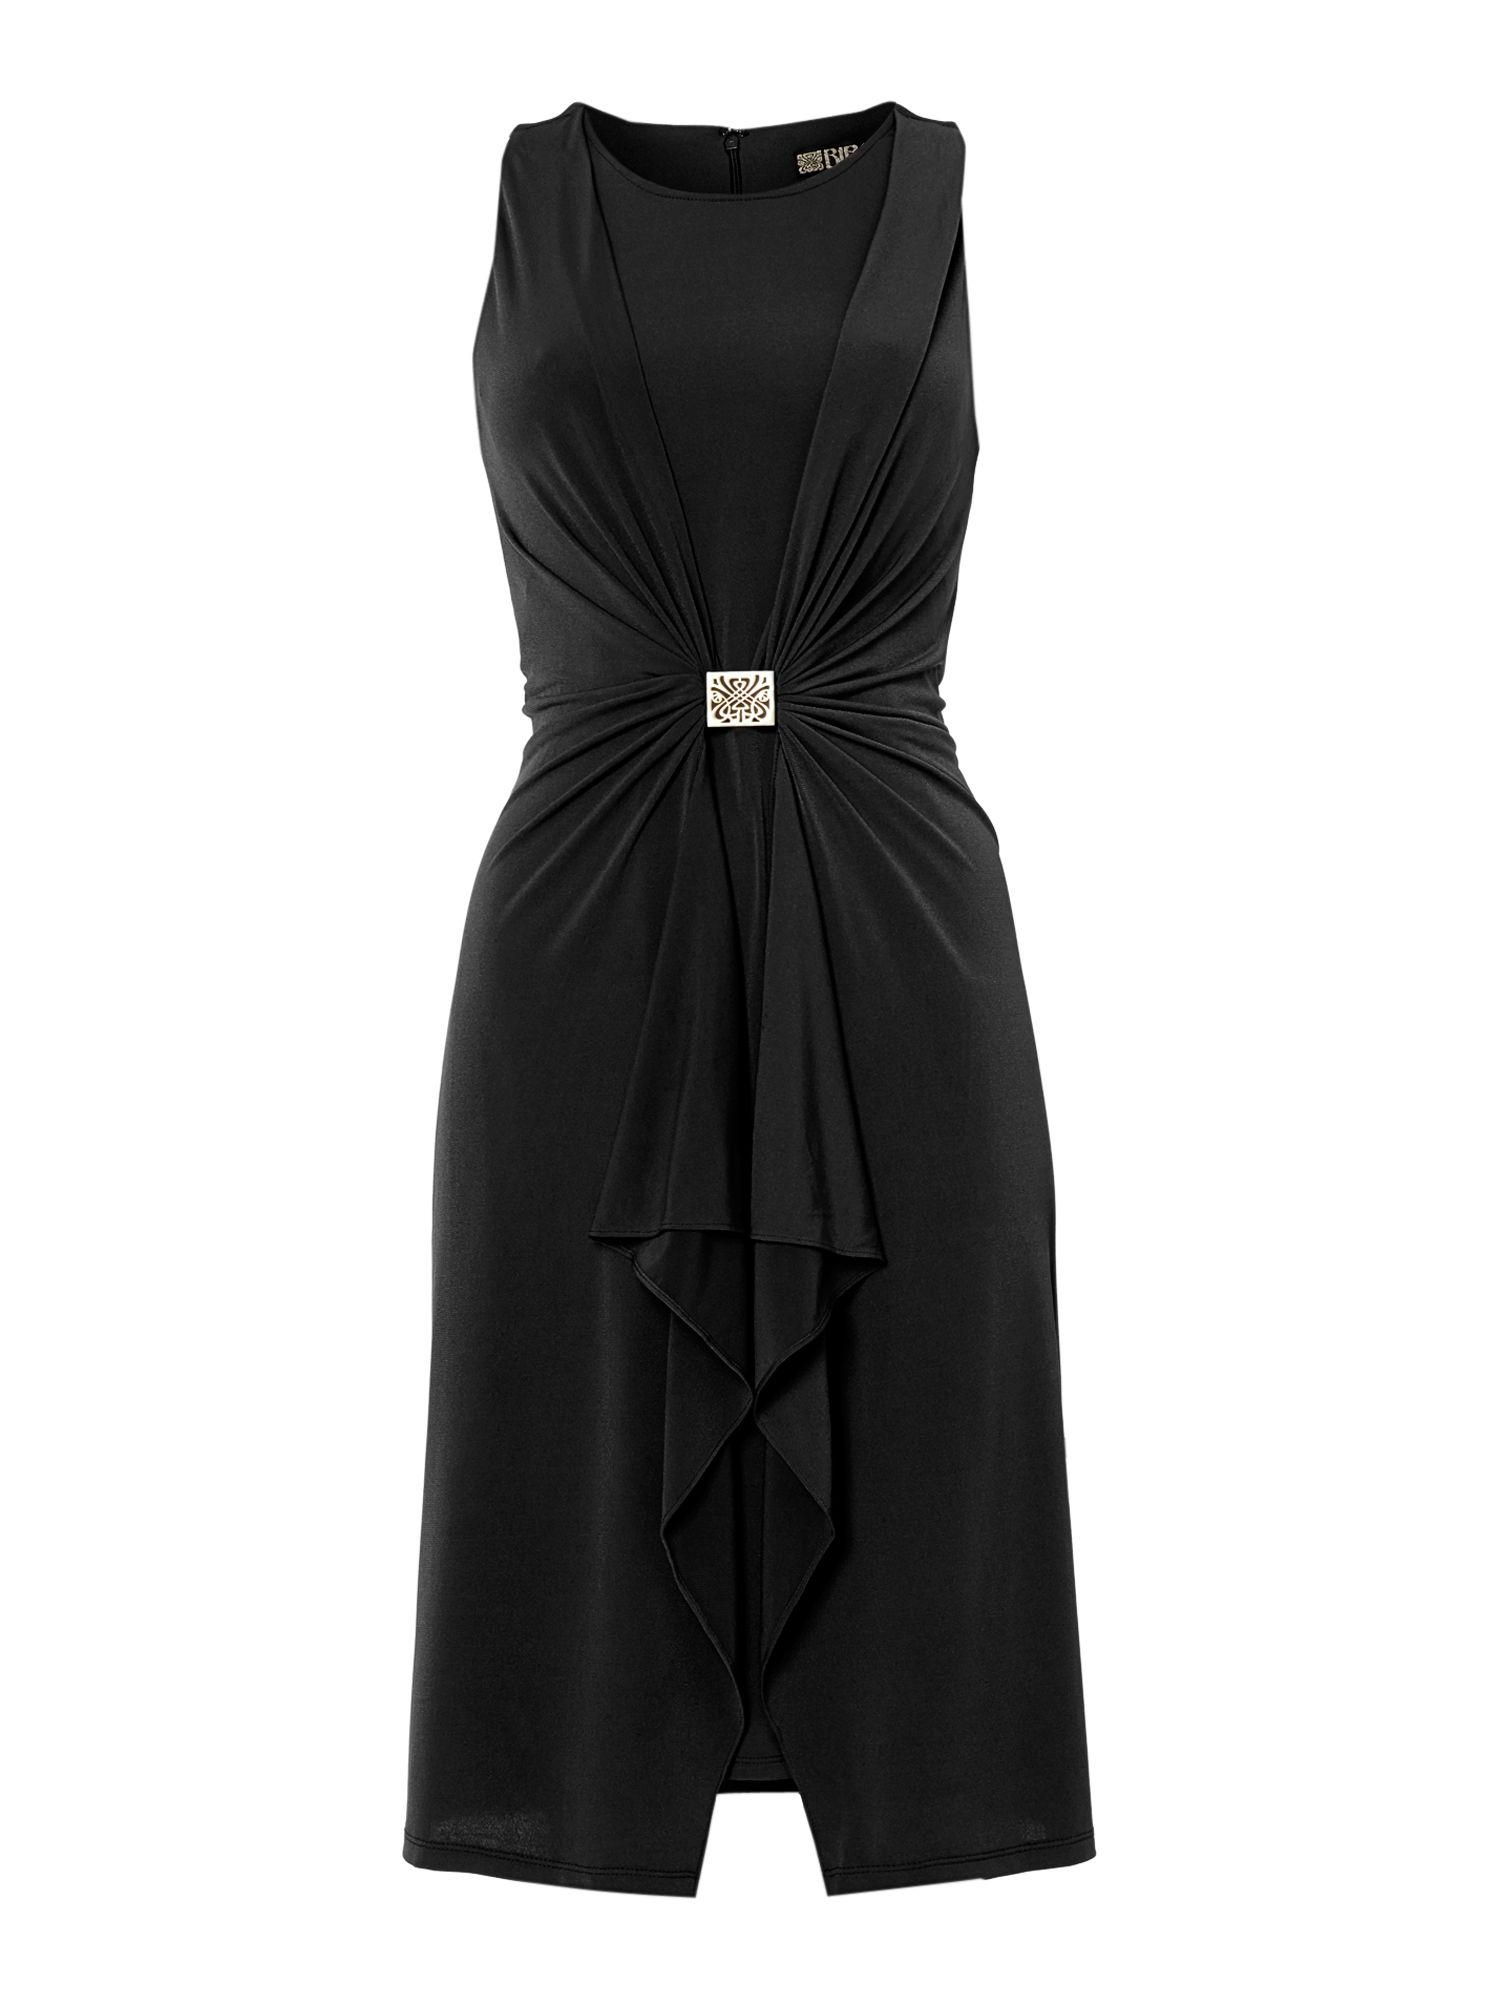 Drape biba logo hardware jersey dress